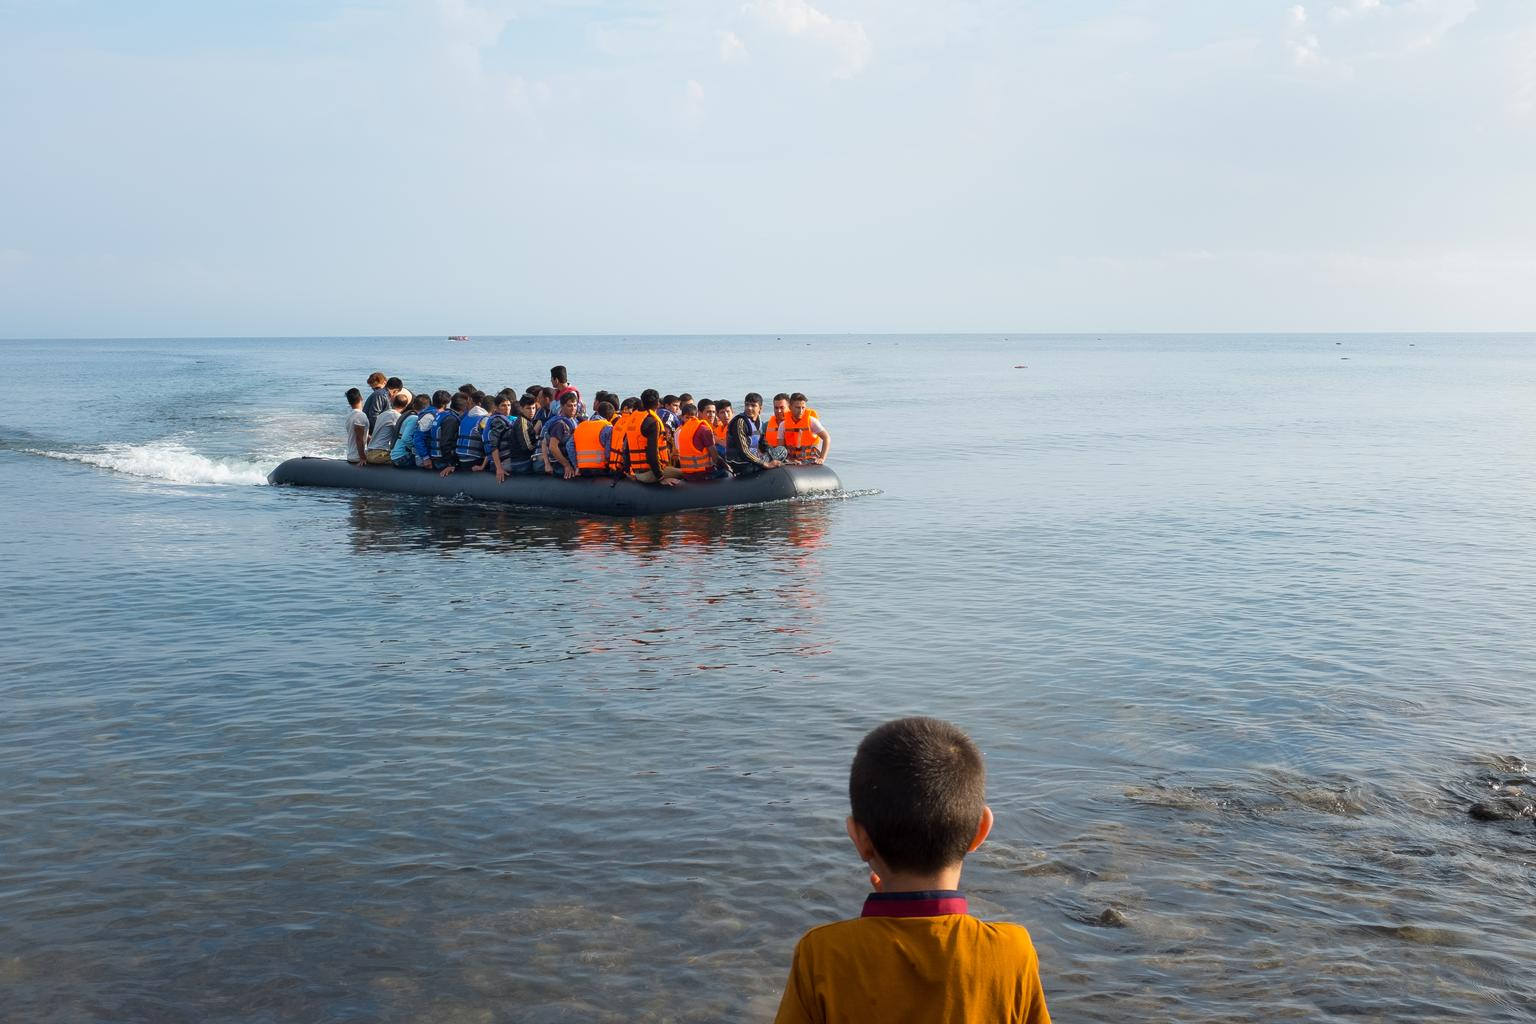 A boy with his back to the camera watches a boat filled with people as it comes ashore